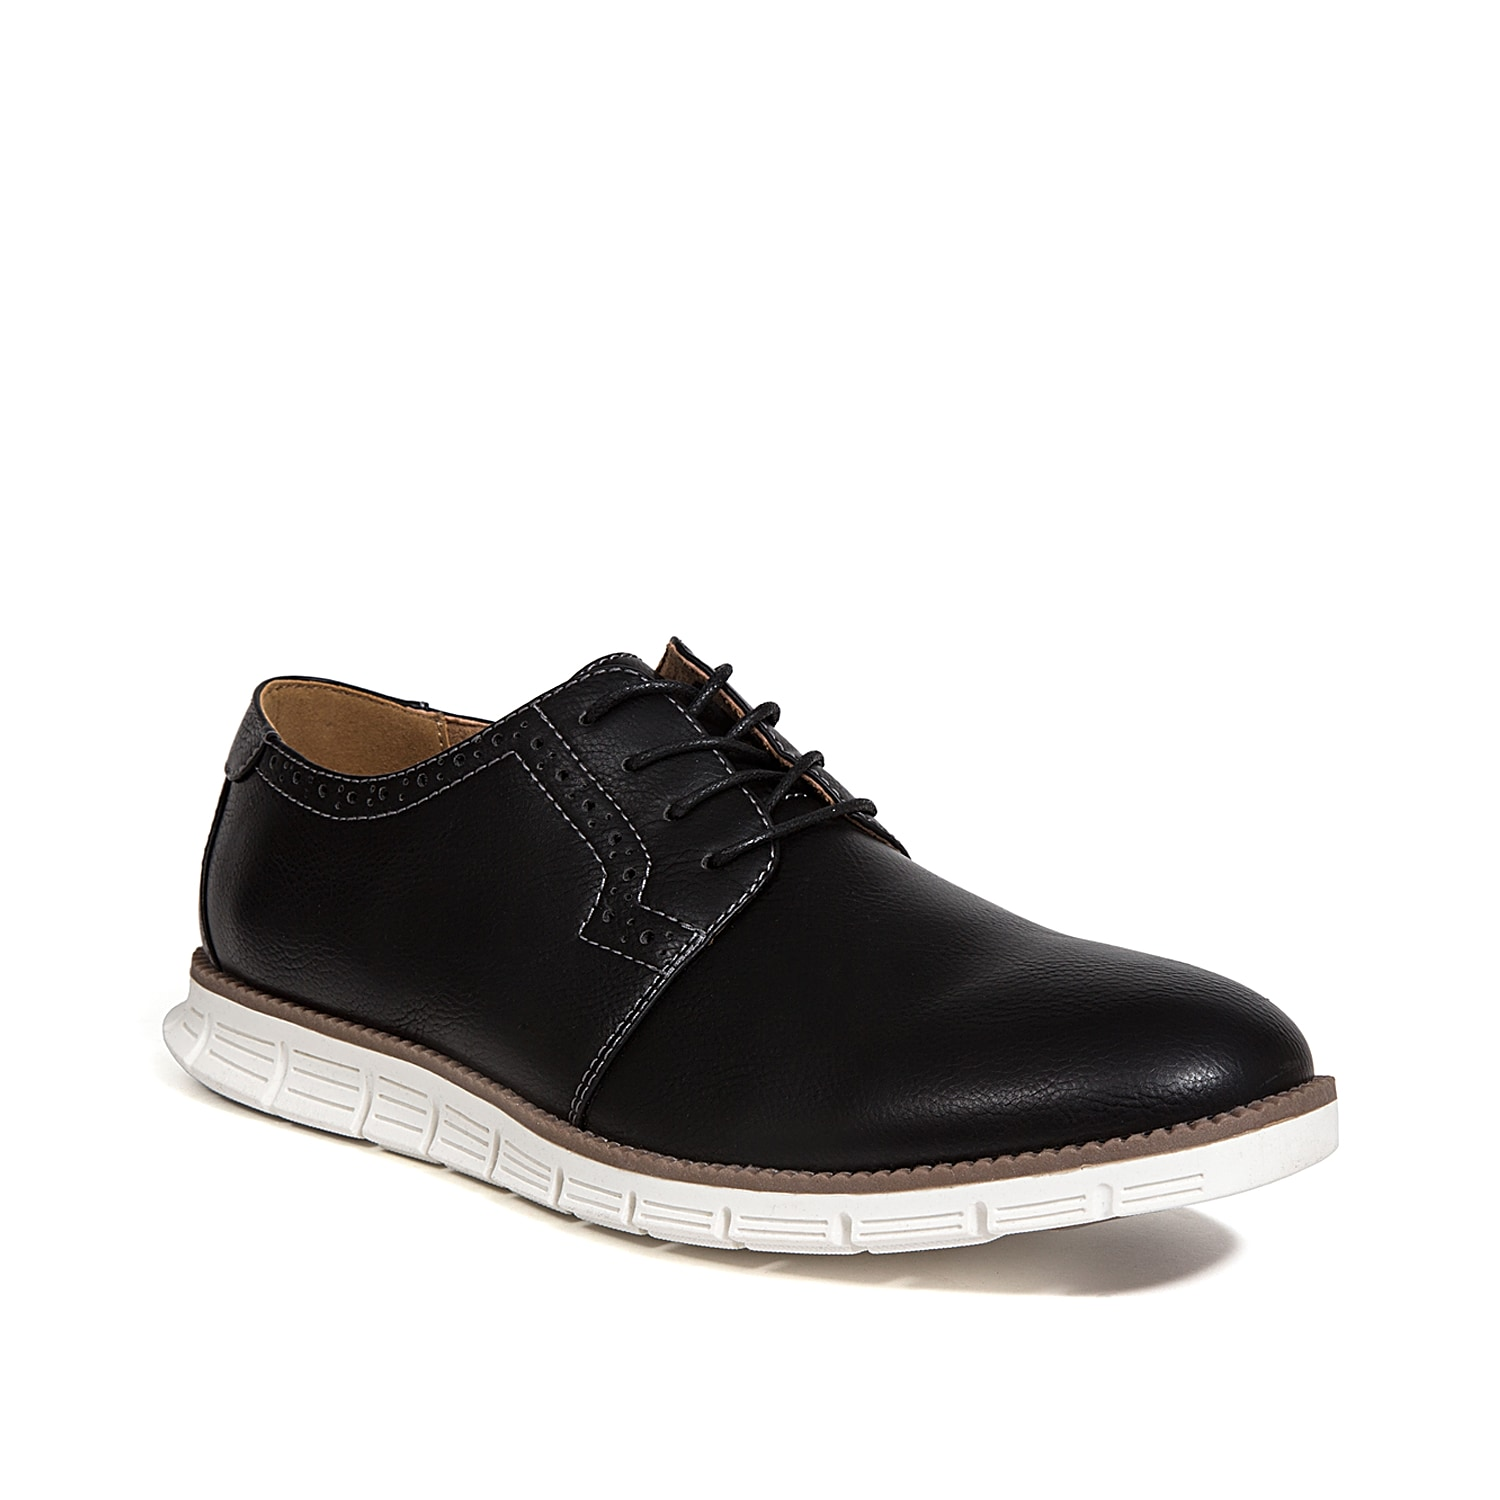 Your tailored style will get a sporty finish with the Aiden oxford from Deer Stags. A memory foam footbed and foam midsole will keep you comfortable anywhere you go.